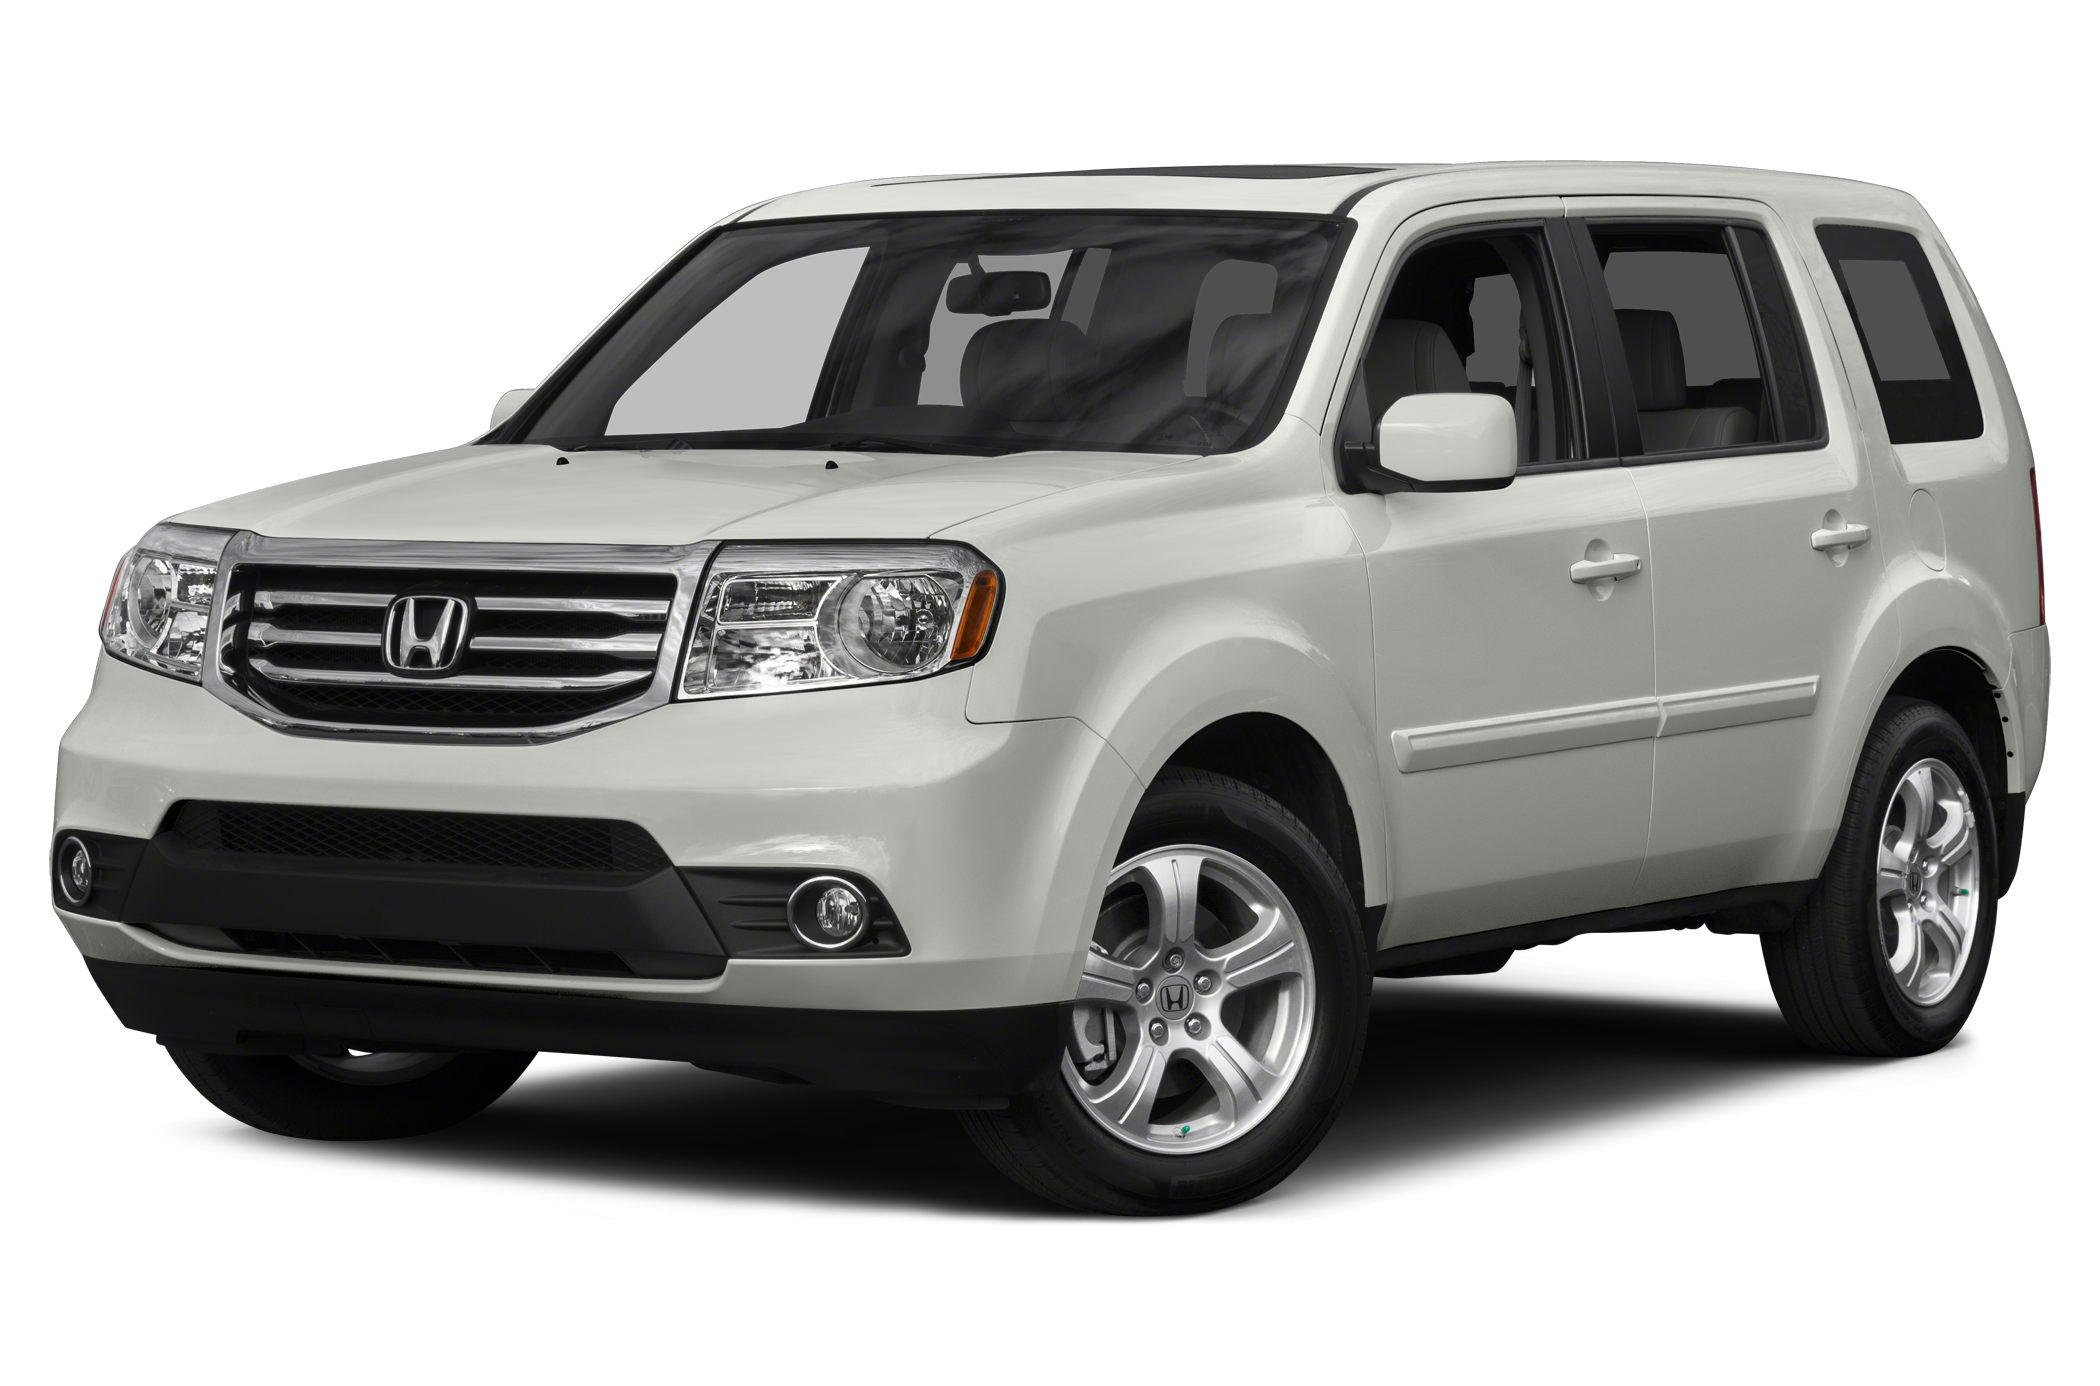 2014 Honda Pilot EX-L Proudly serving manatee county for over 60 years offering Cars Trucks SUV